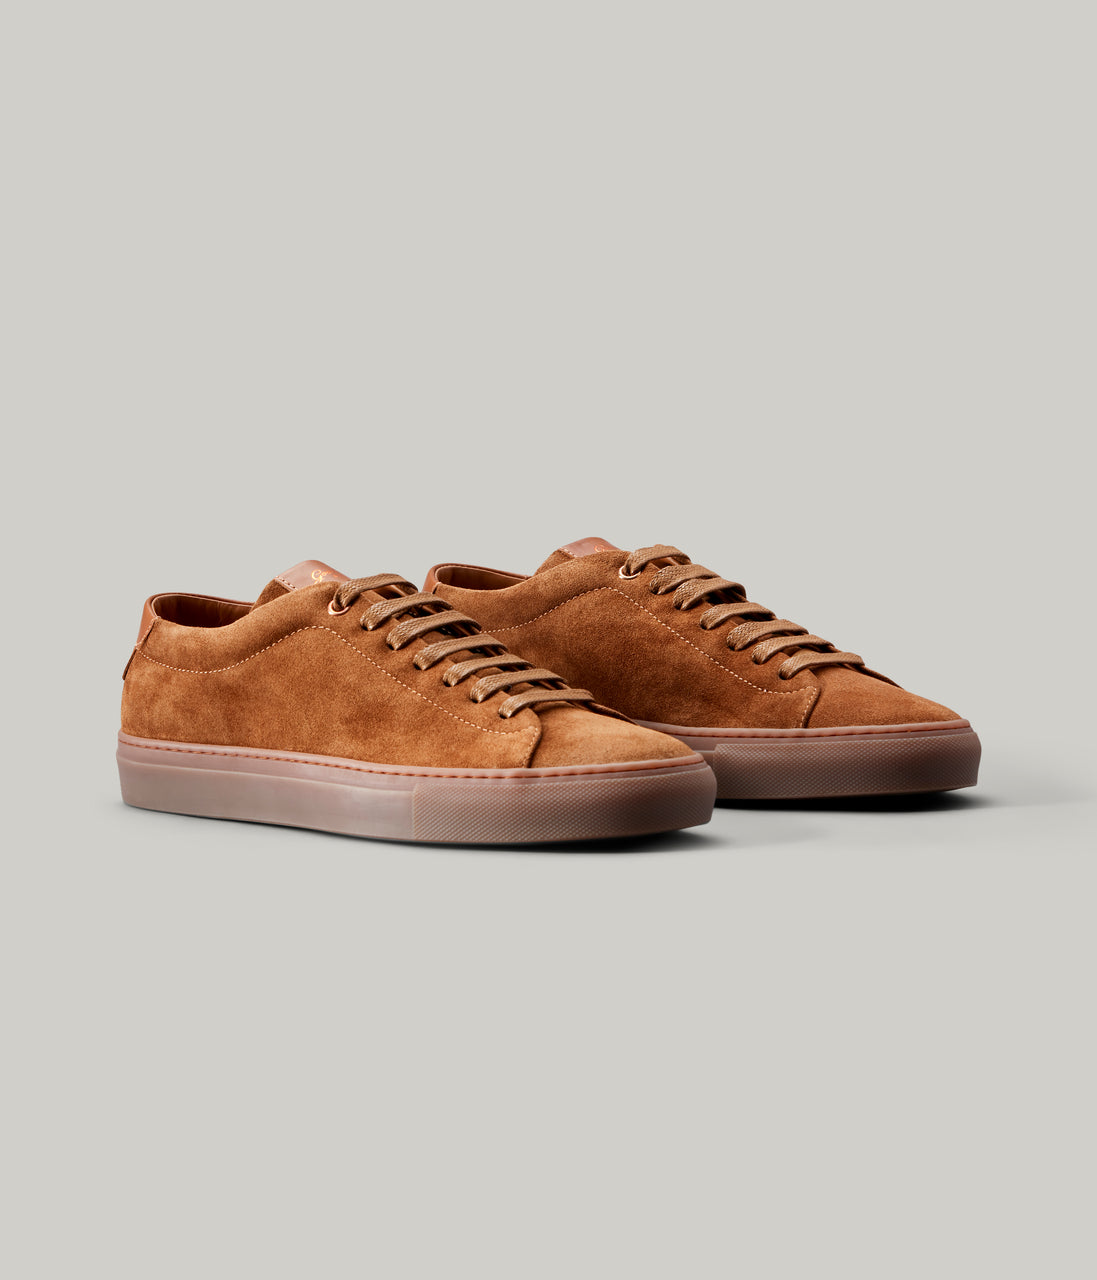 Edge Mono Lo-Top Sneaker in Suede - Snuff - Good Man Brand - Edge Mono Lo-Top Sneaker in Suede - Snuff